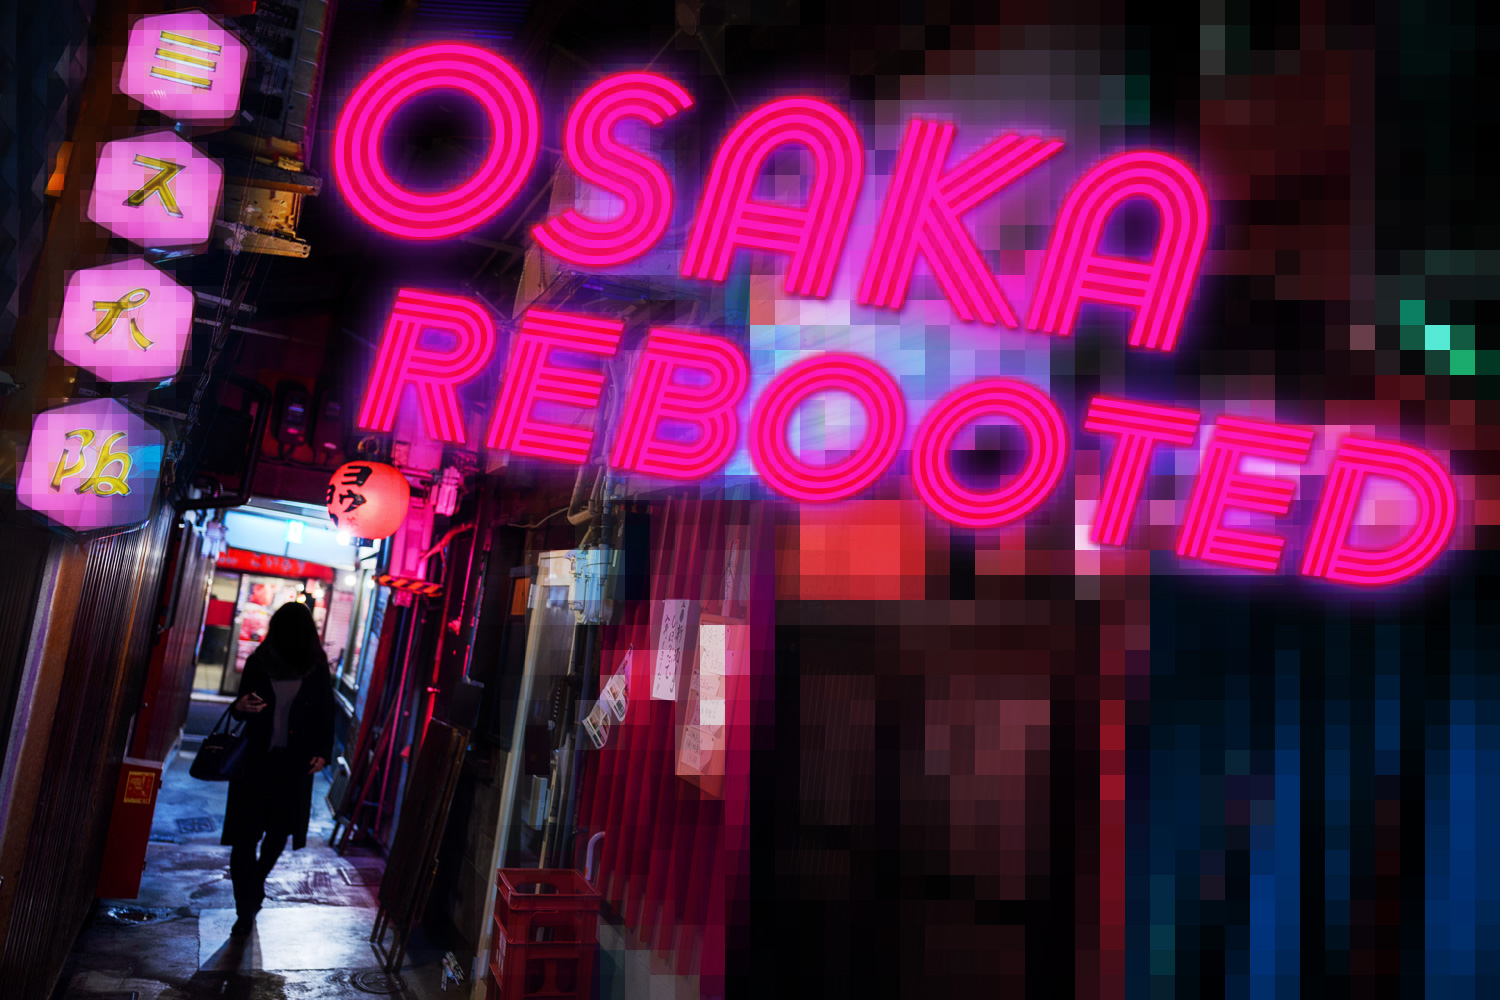 Osaka Rebooted: Creating Photo Adventures — EYExplore